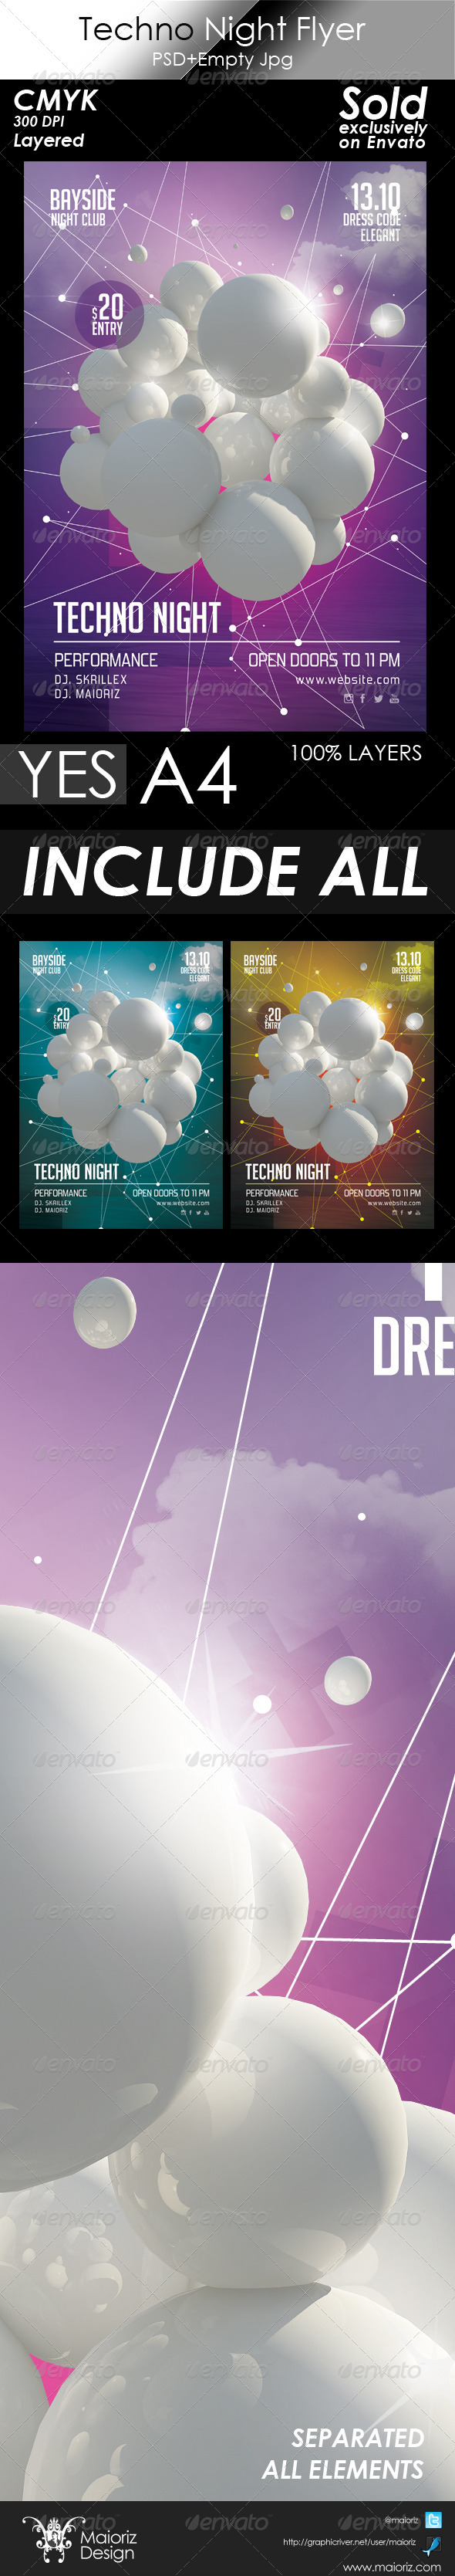 Techno Night Flyer Template - Clubs & Parties Events